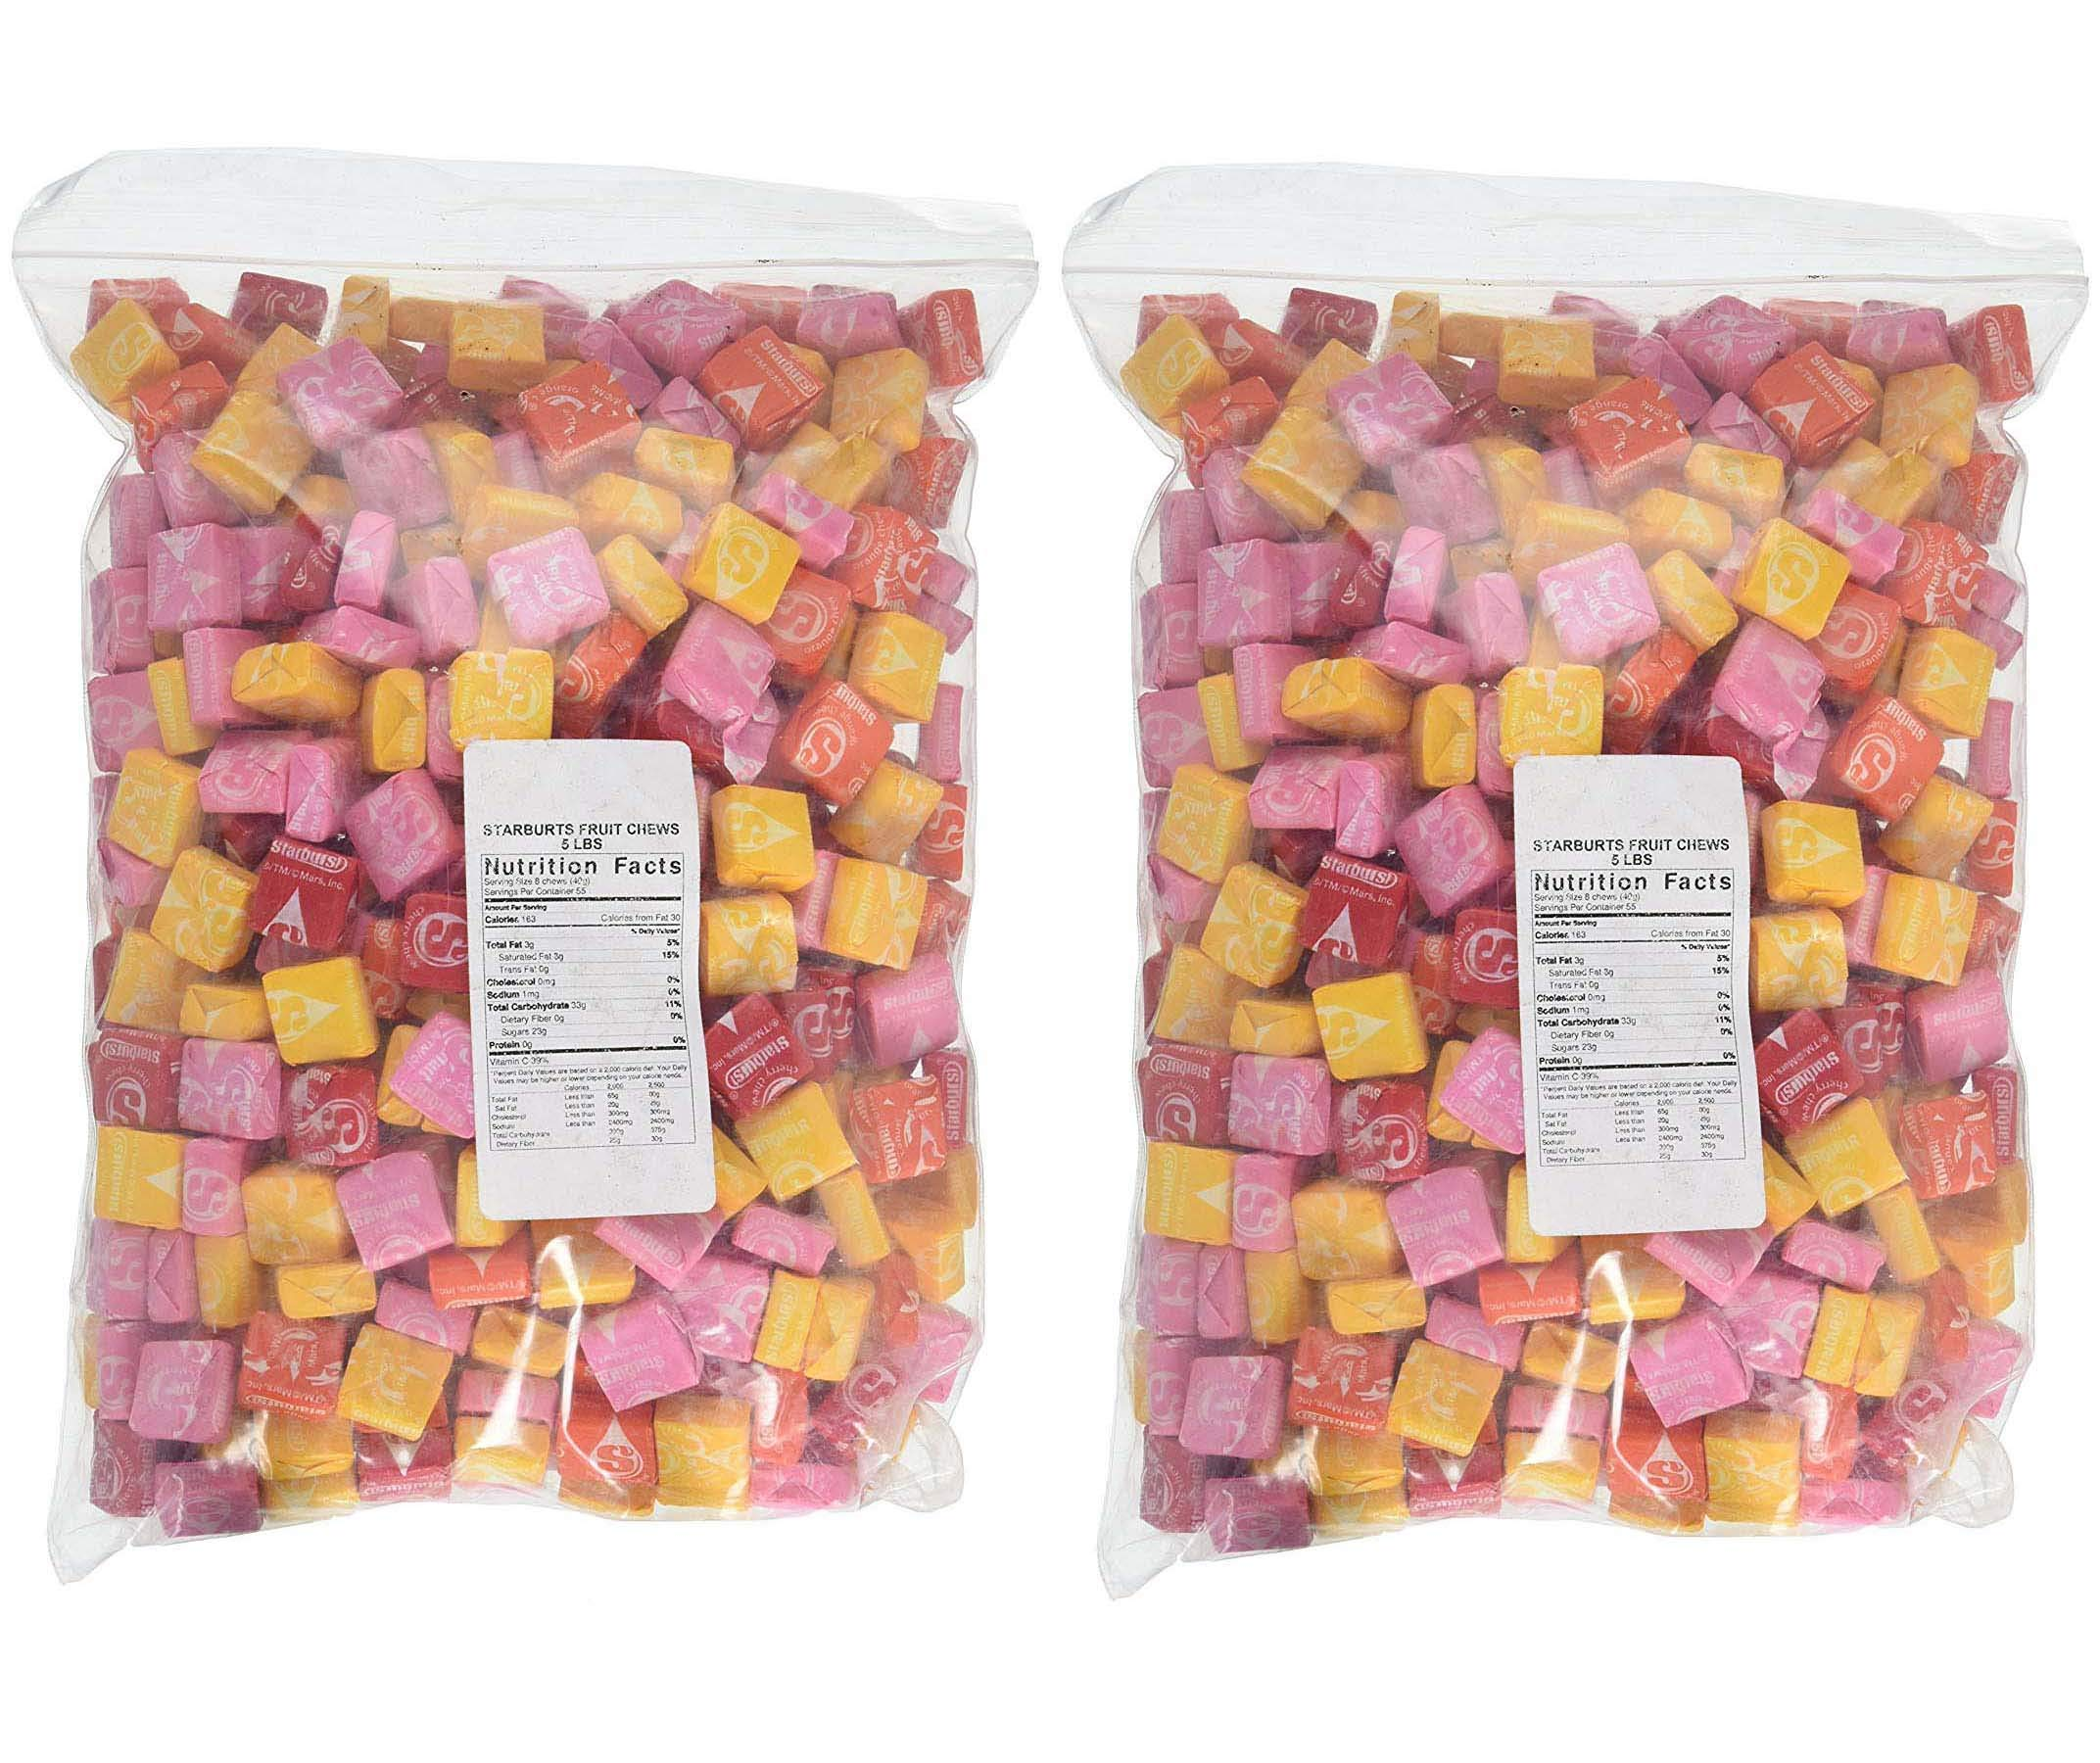 5 lbs Starburst Bulk Candy Wholesale (2 pack - 10 lbs total)